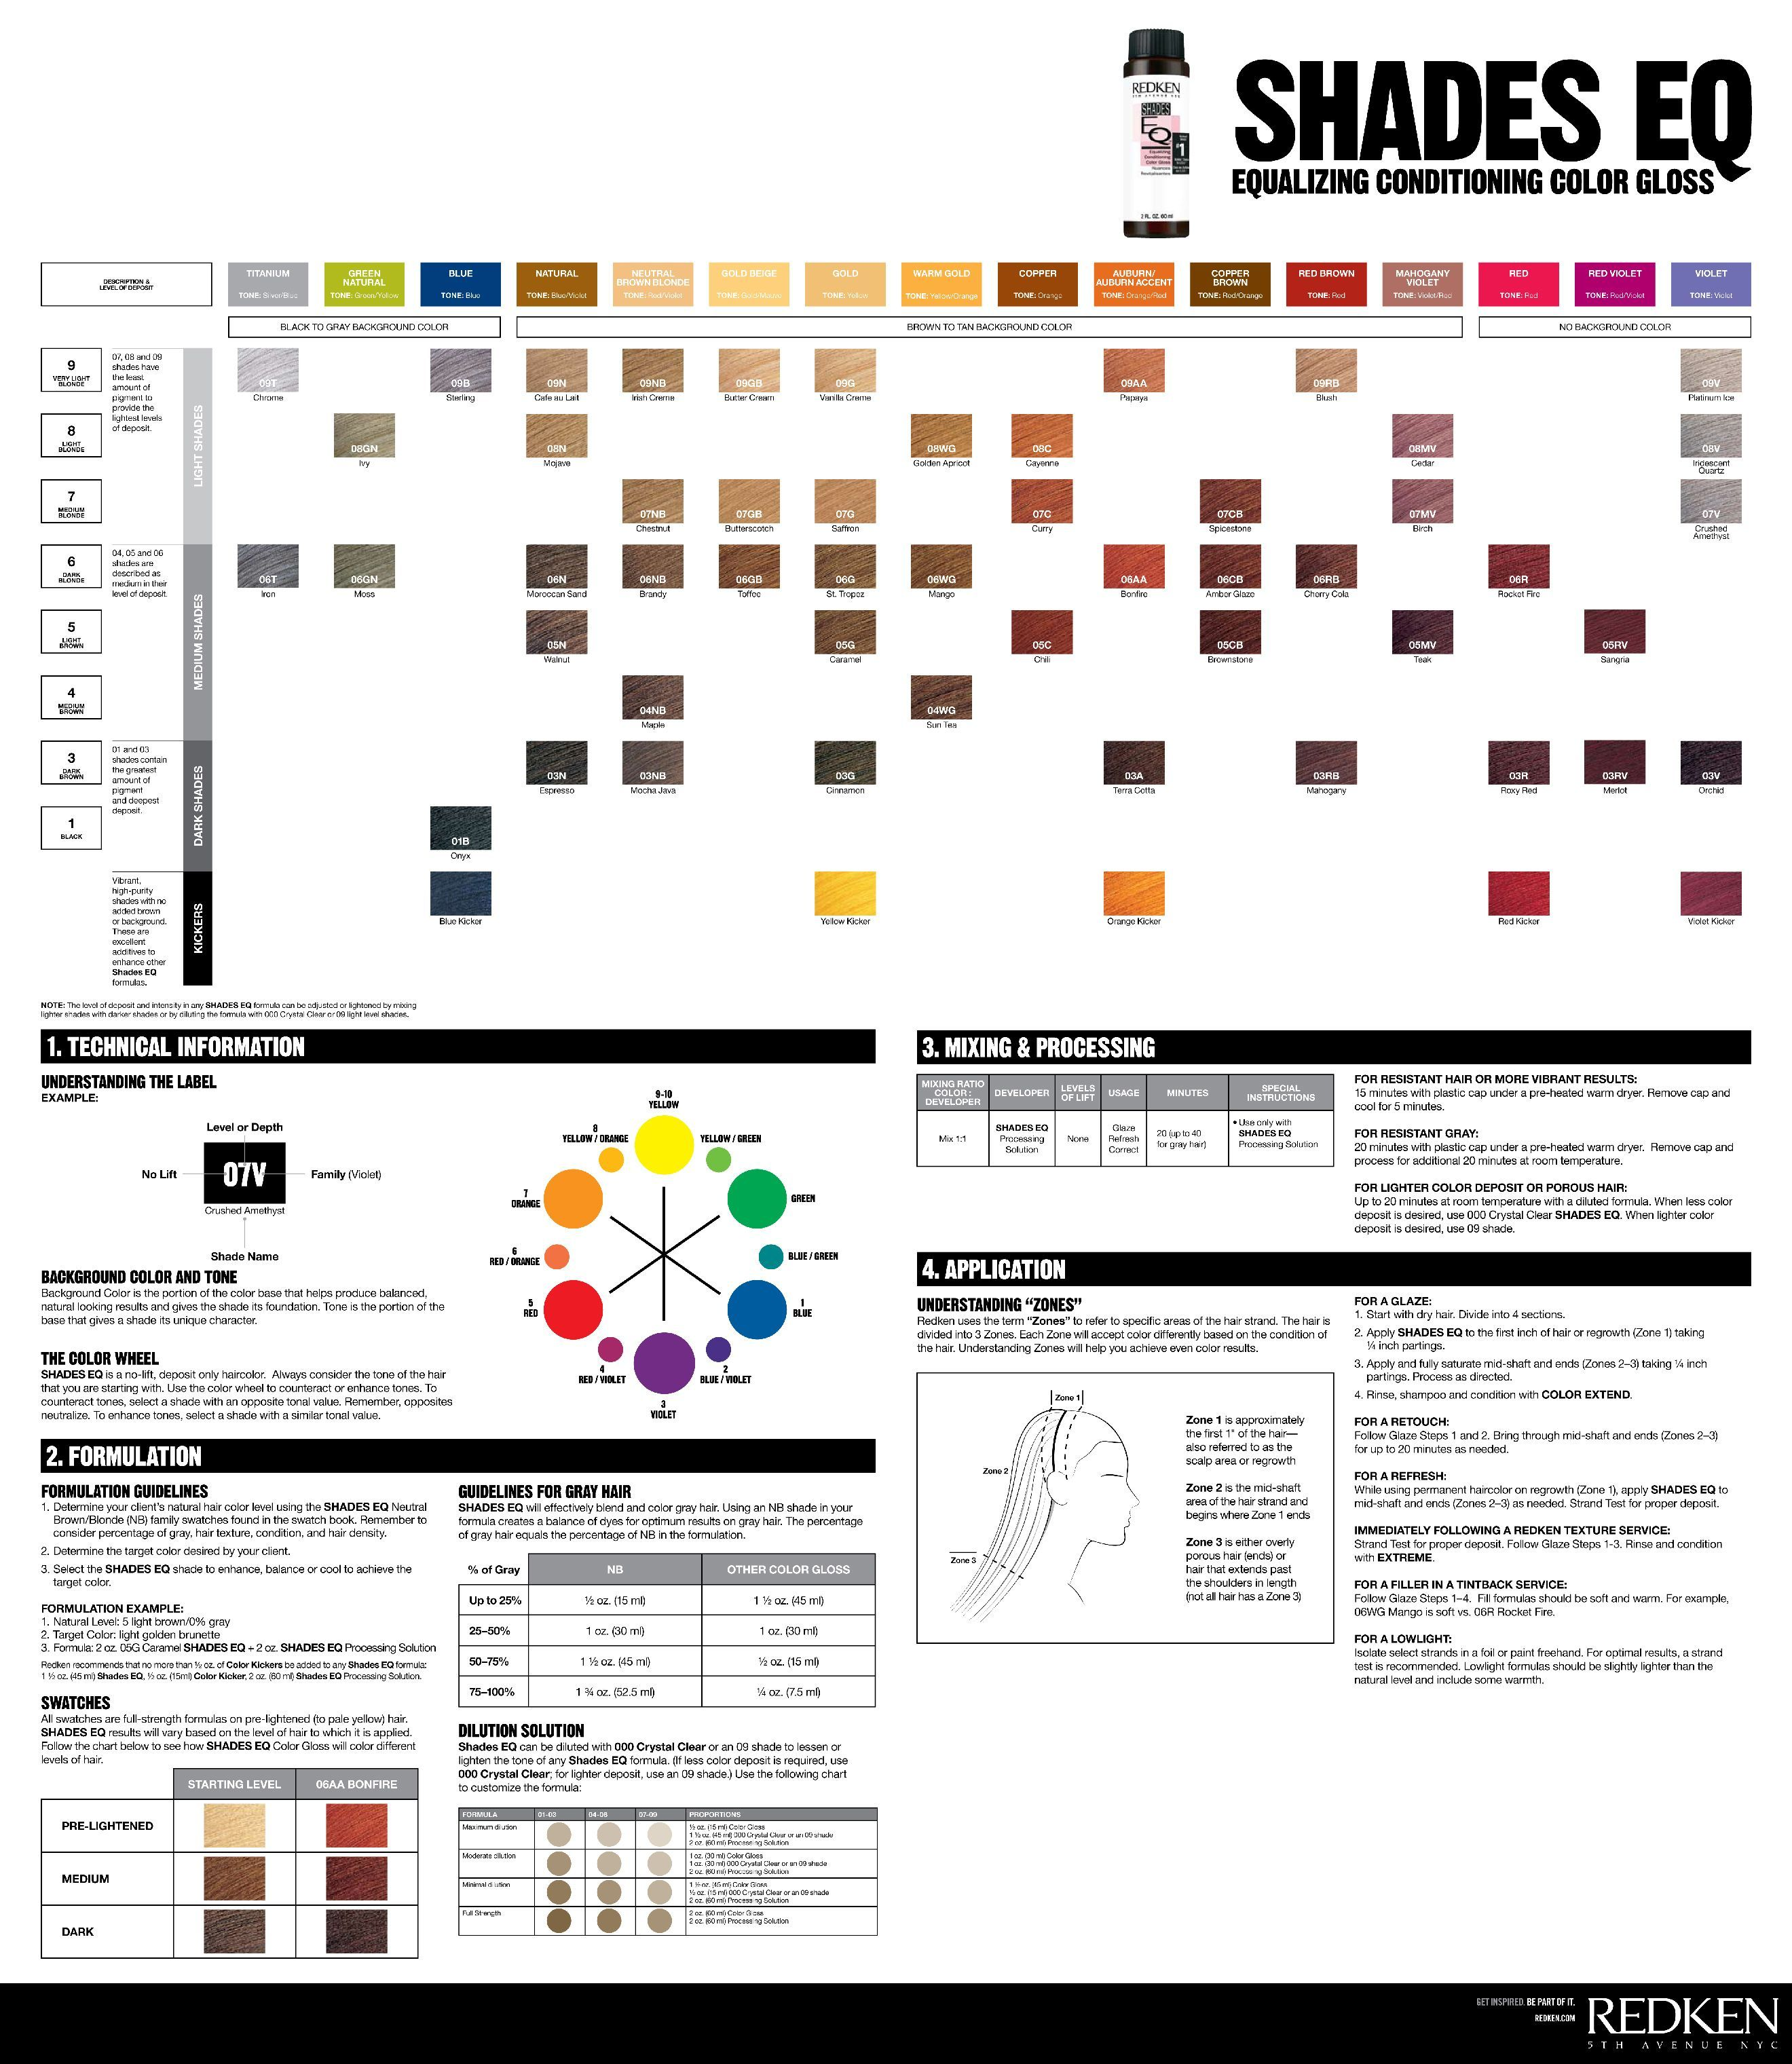 Pin By Lorraine Green On Redken Shades In 2020 Redken Shades Redken Hair Color Hair Color Chart